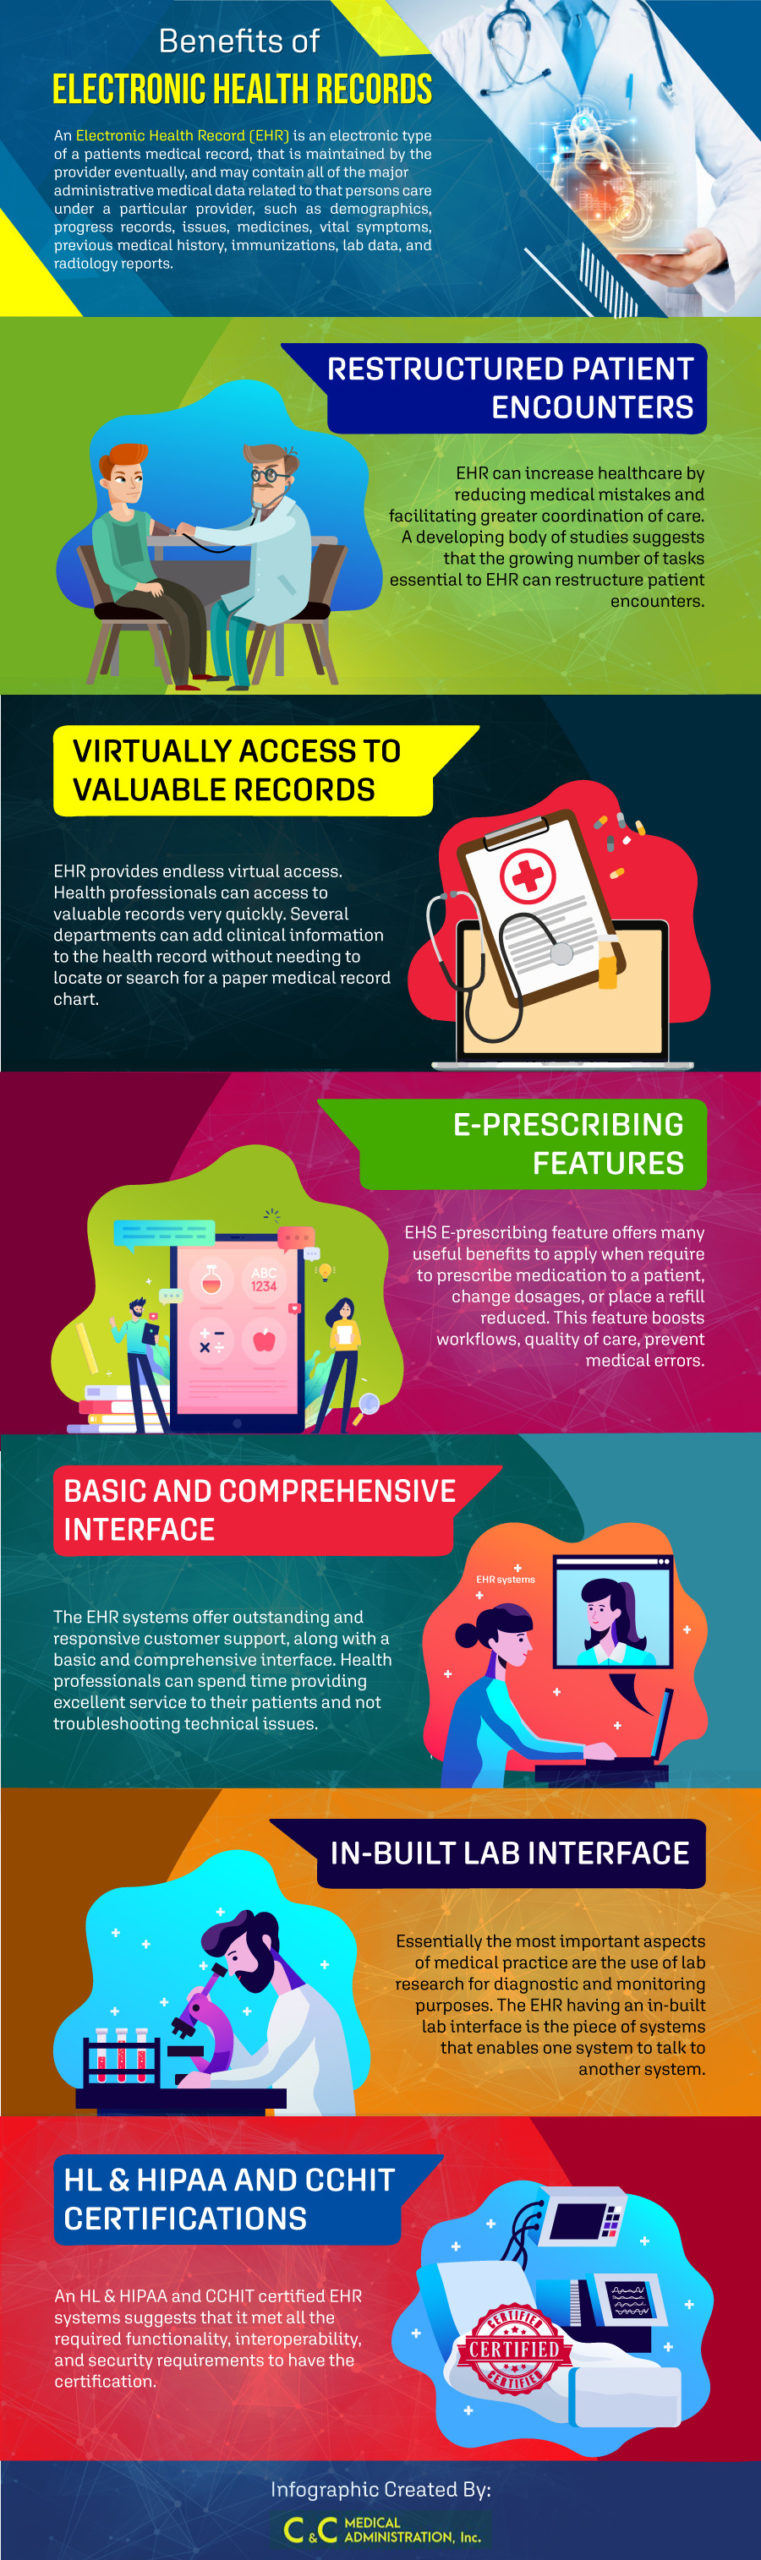 Benefits Of EHR, Electronic Health Records [Infographic]